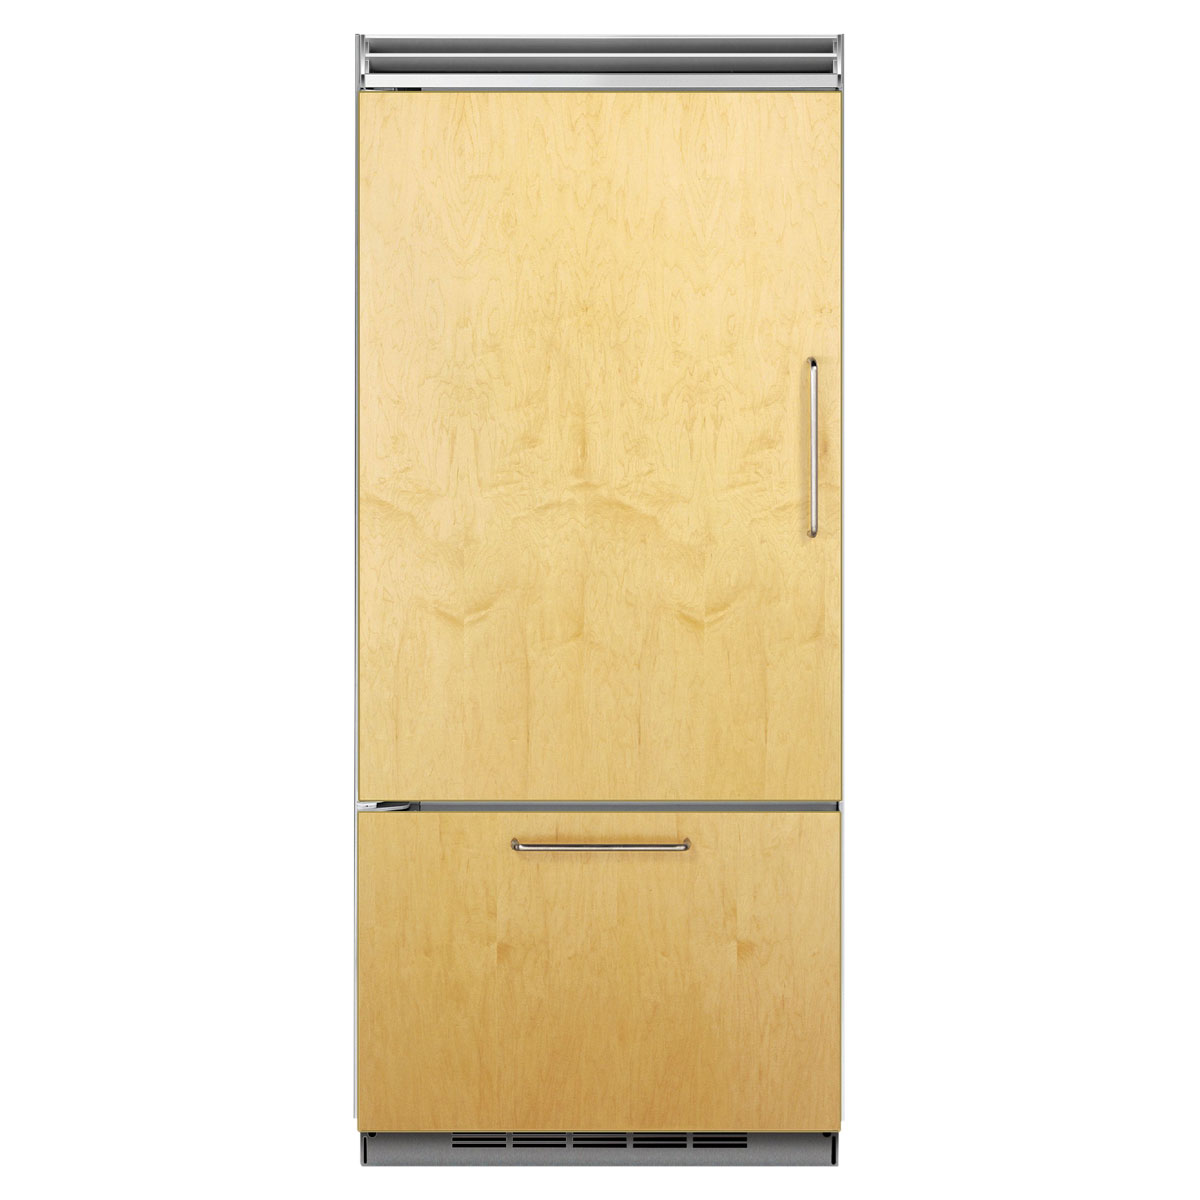 "Marvel  Marvel Professional Built-In 36"" Bottom Freezer Refrigerator- Panel-Ready Solid Overlay Door Left Hinge"